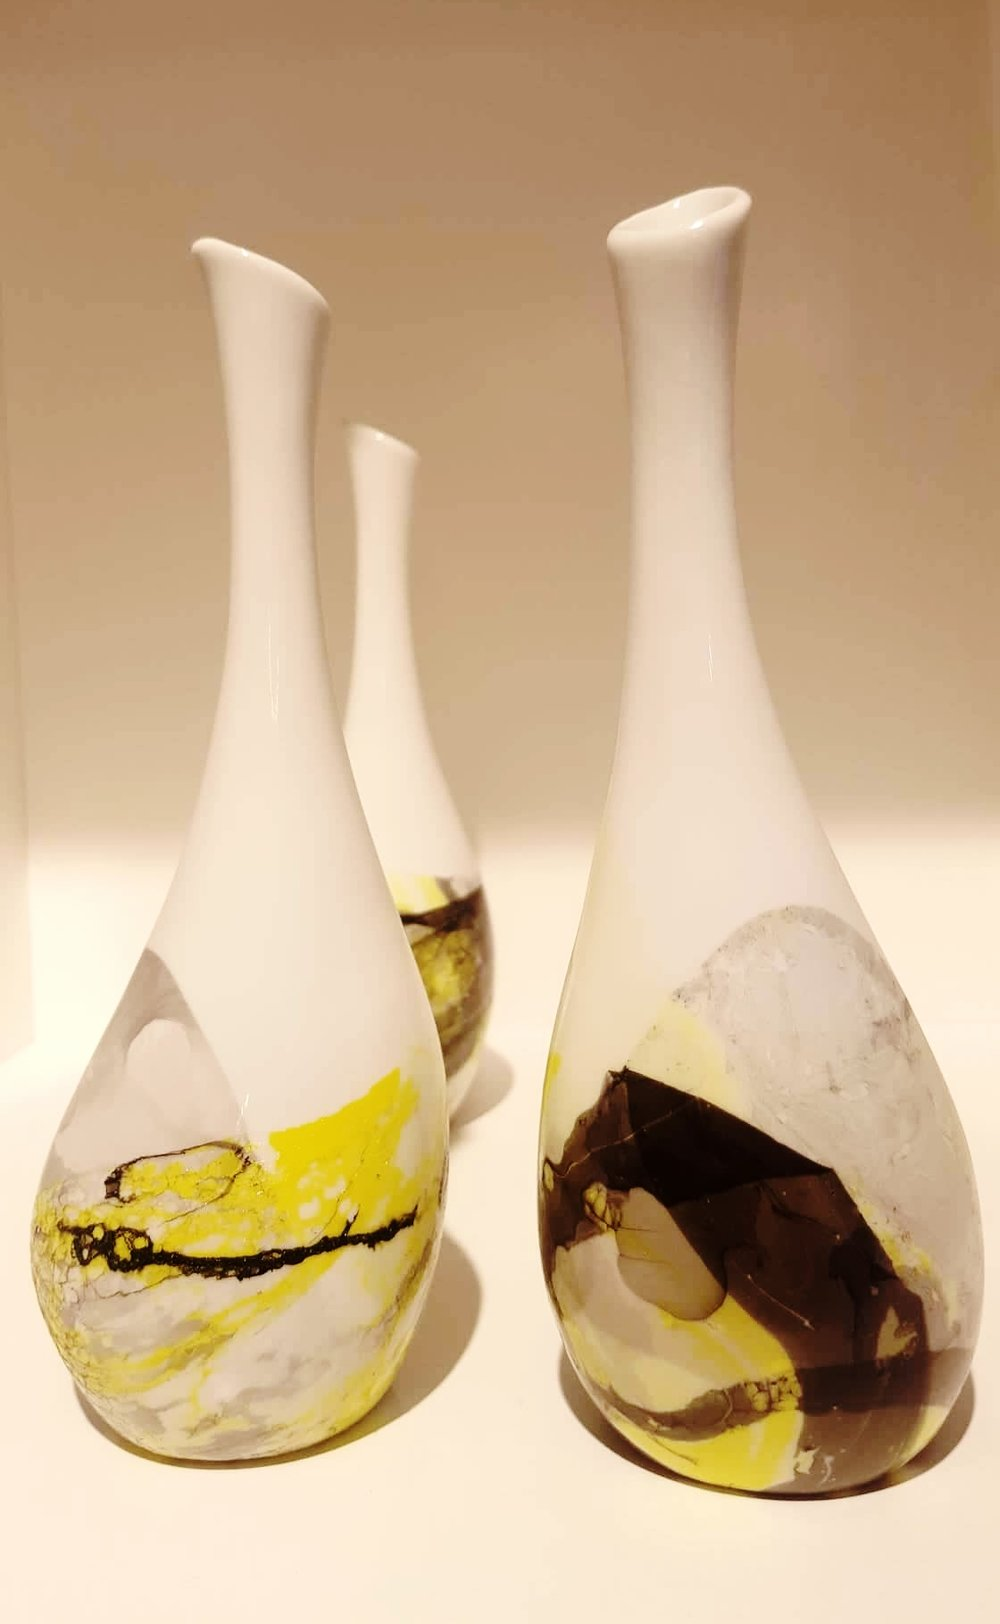 CERAMIC COLLECTION - HANDMADE BY CARO BERLINER ART